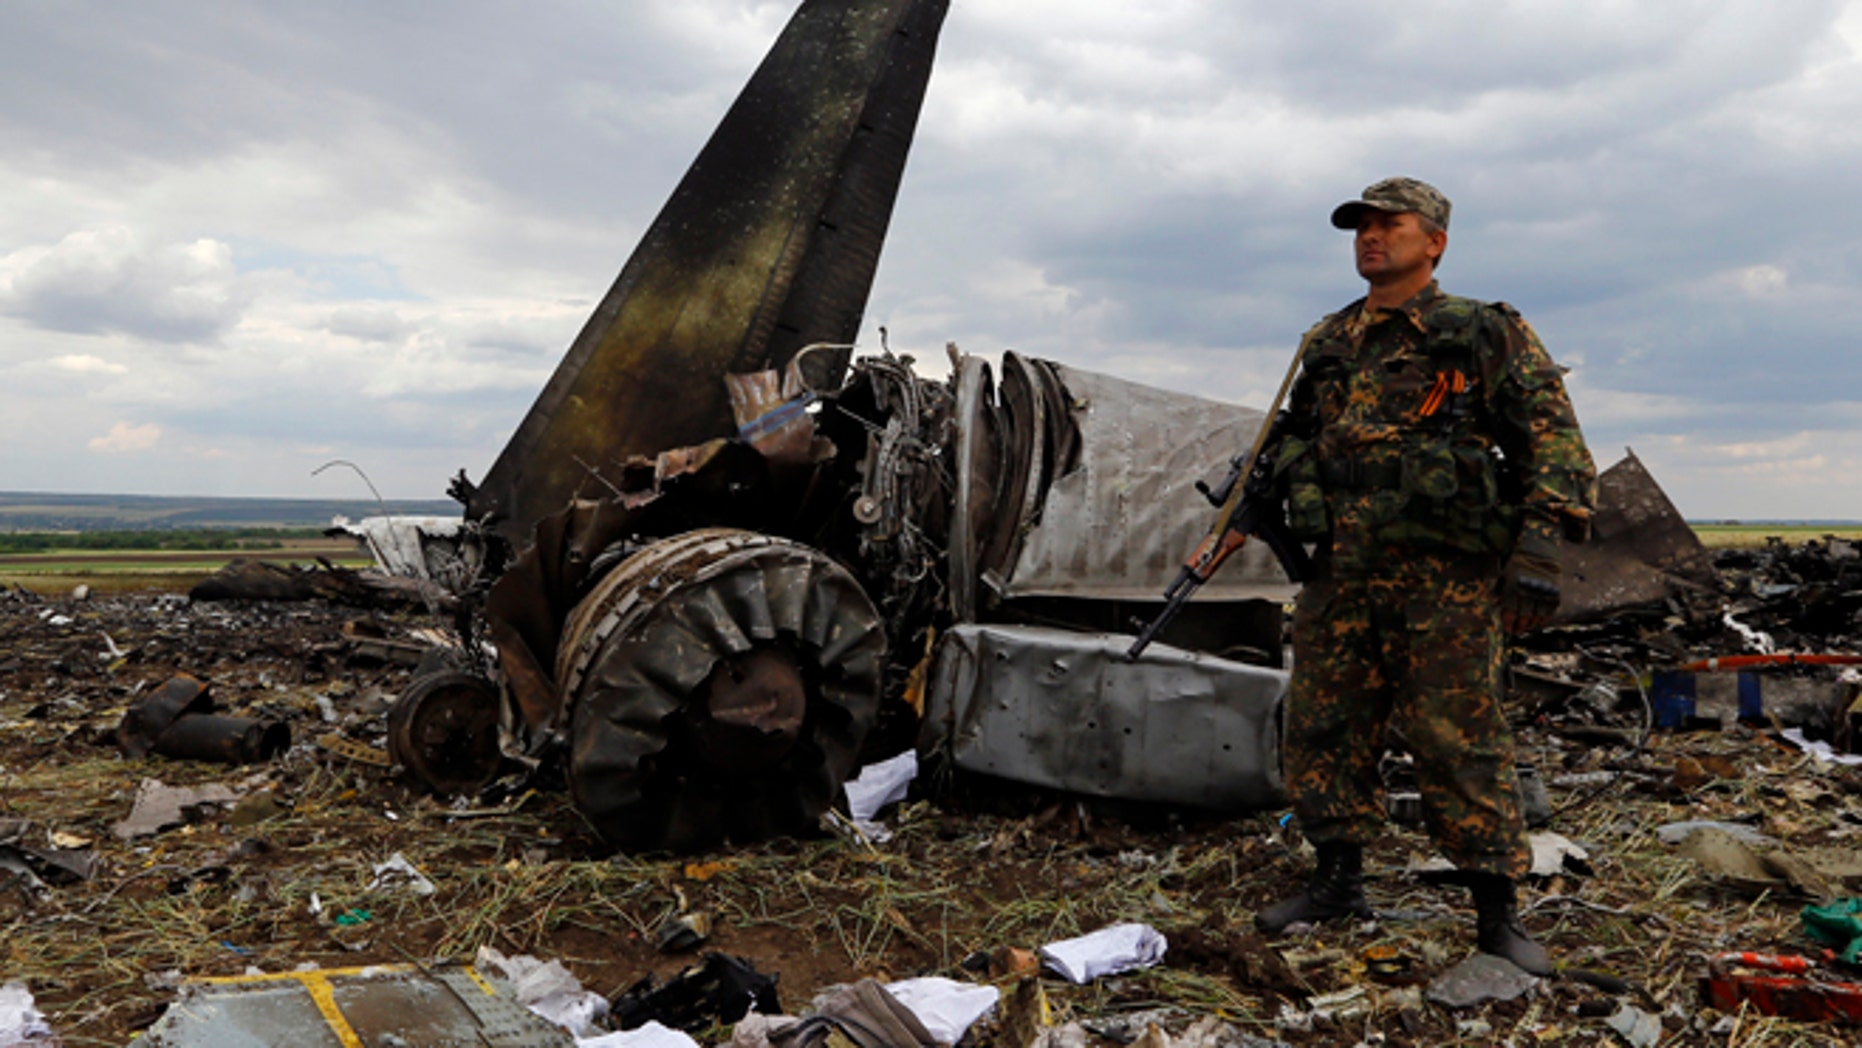 June 14: An armed pro-Russian separatist stands guard at the site of the crash of the Il-76 Ukrainian army transport plane in Luhansk.